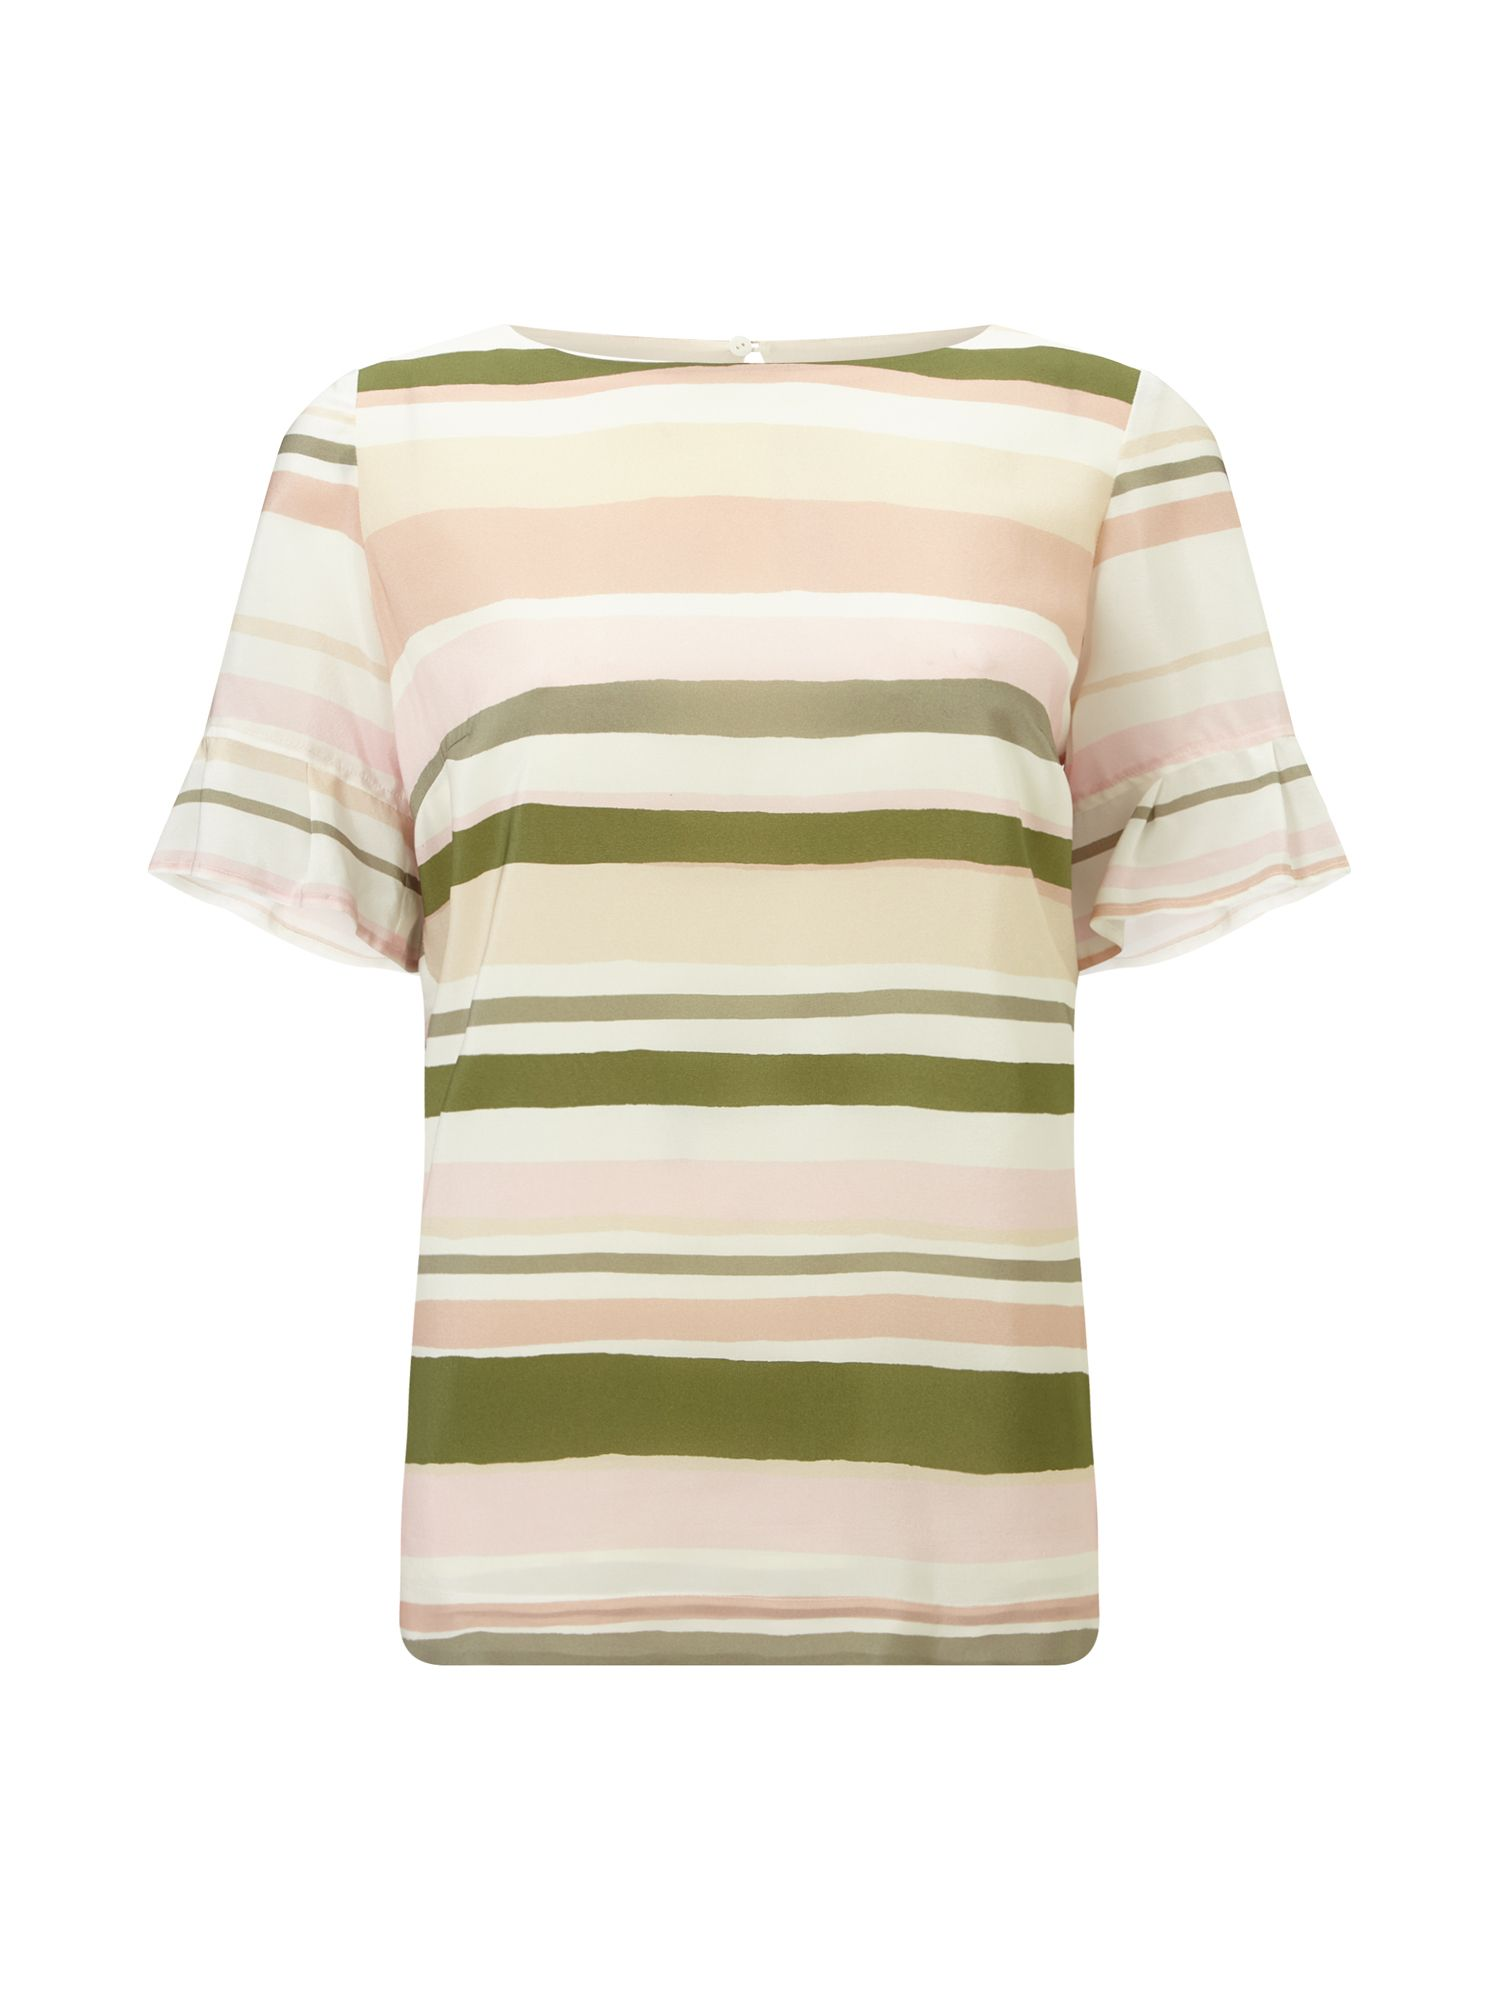 Jacques Vert Stripe Frill Sleeve Top, Multi-Coloured